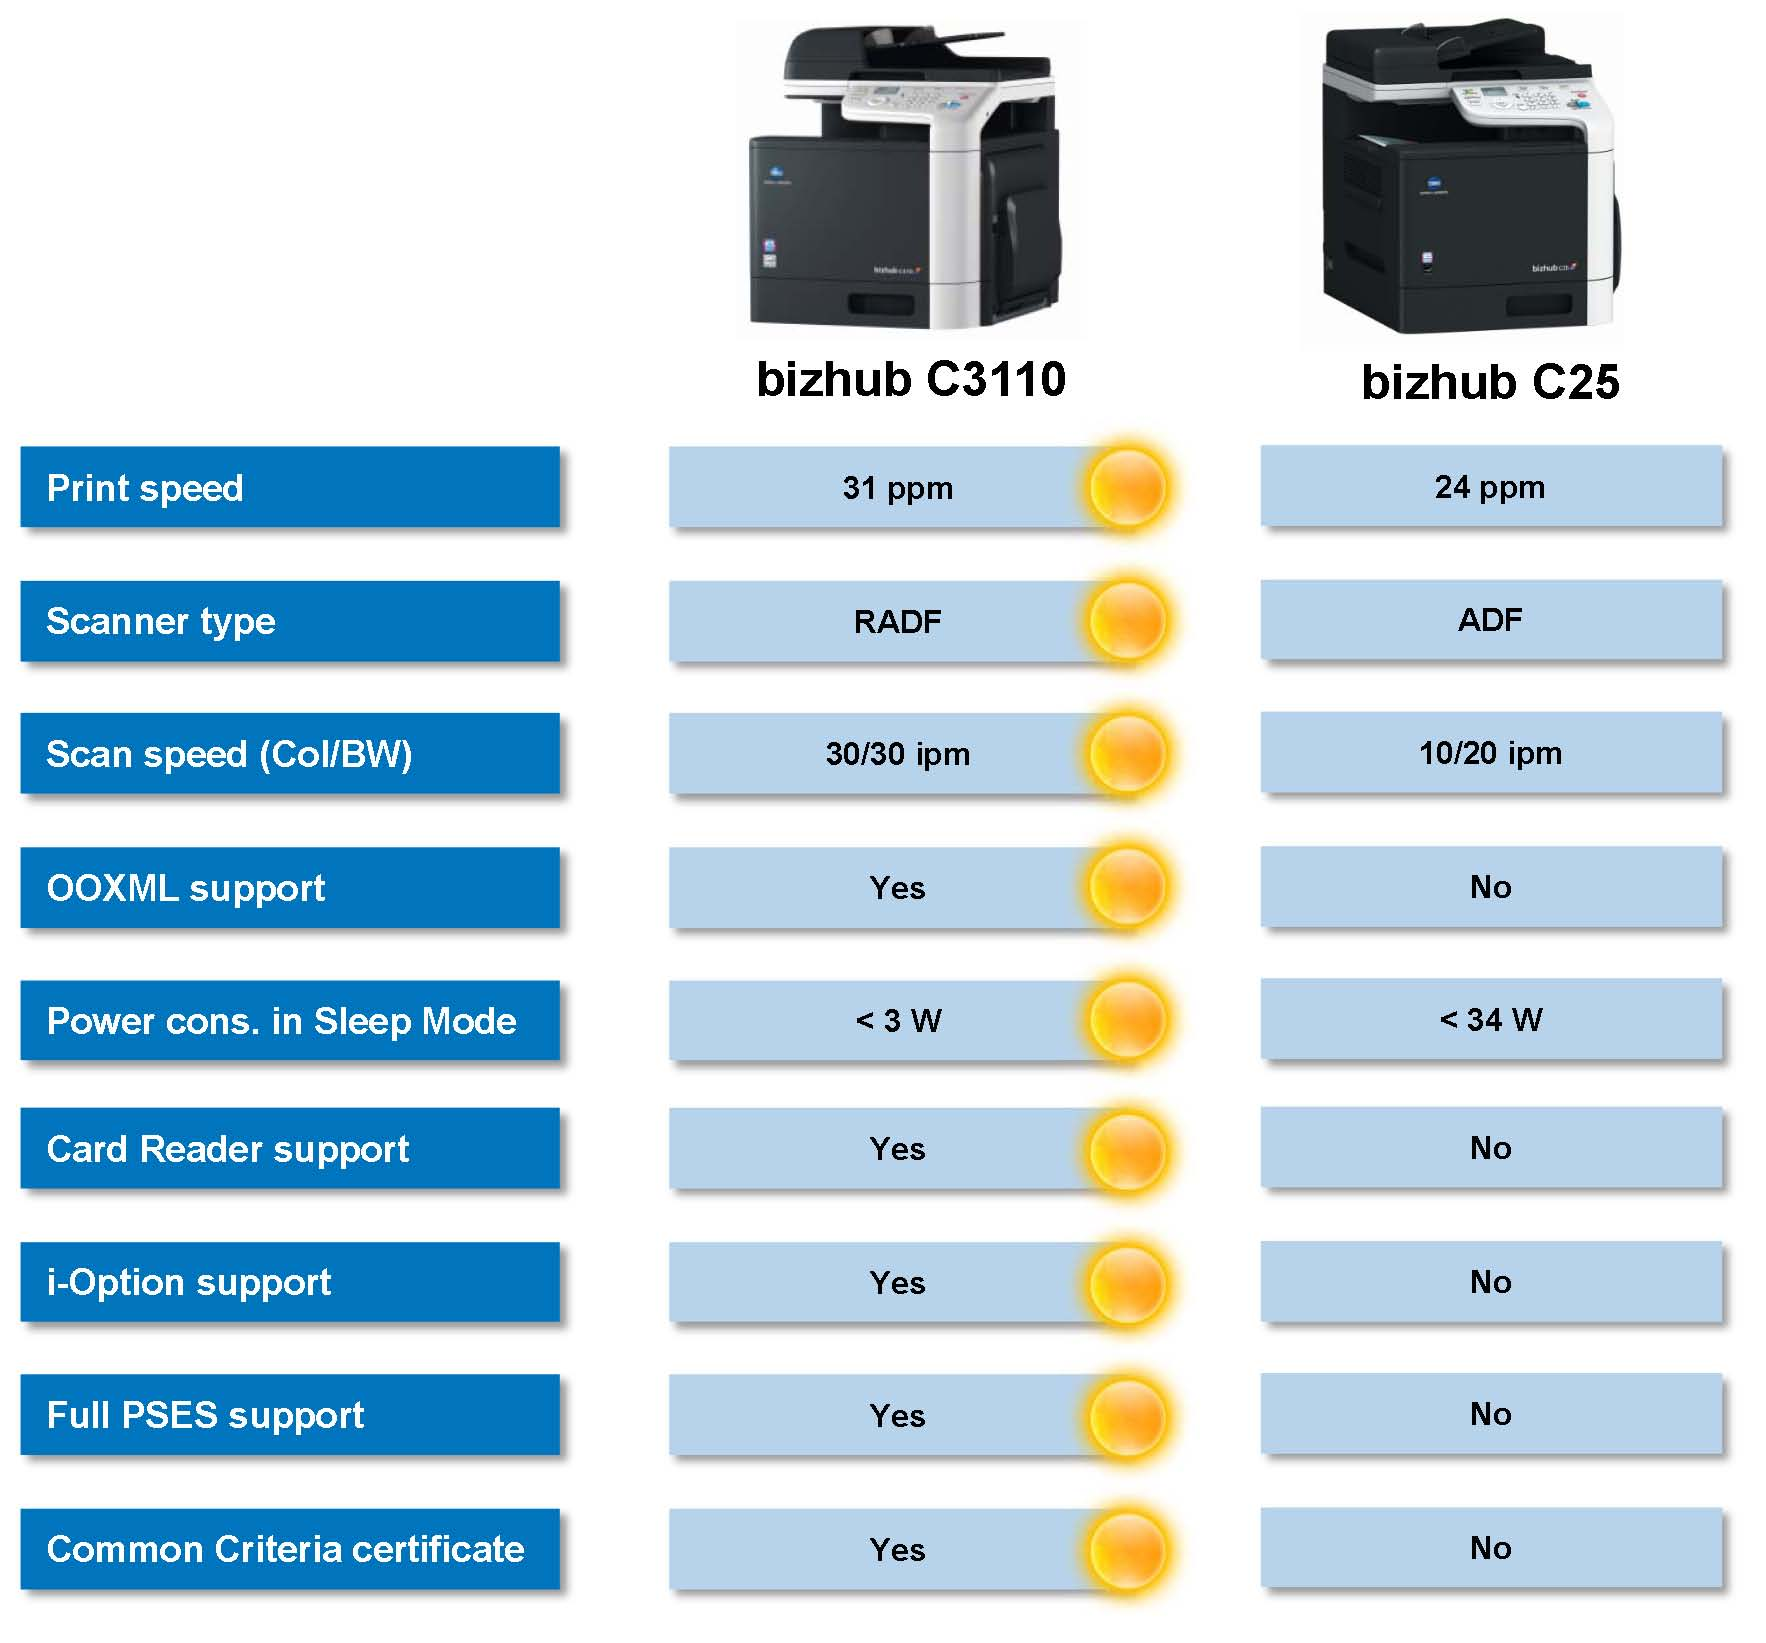 BIZHUB C3110 ADVANTAGES OVER BIZHUB C25